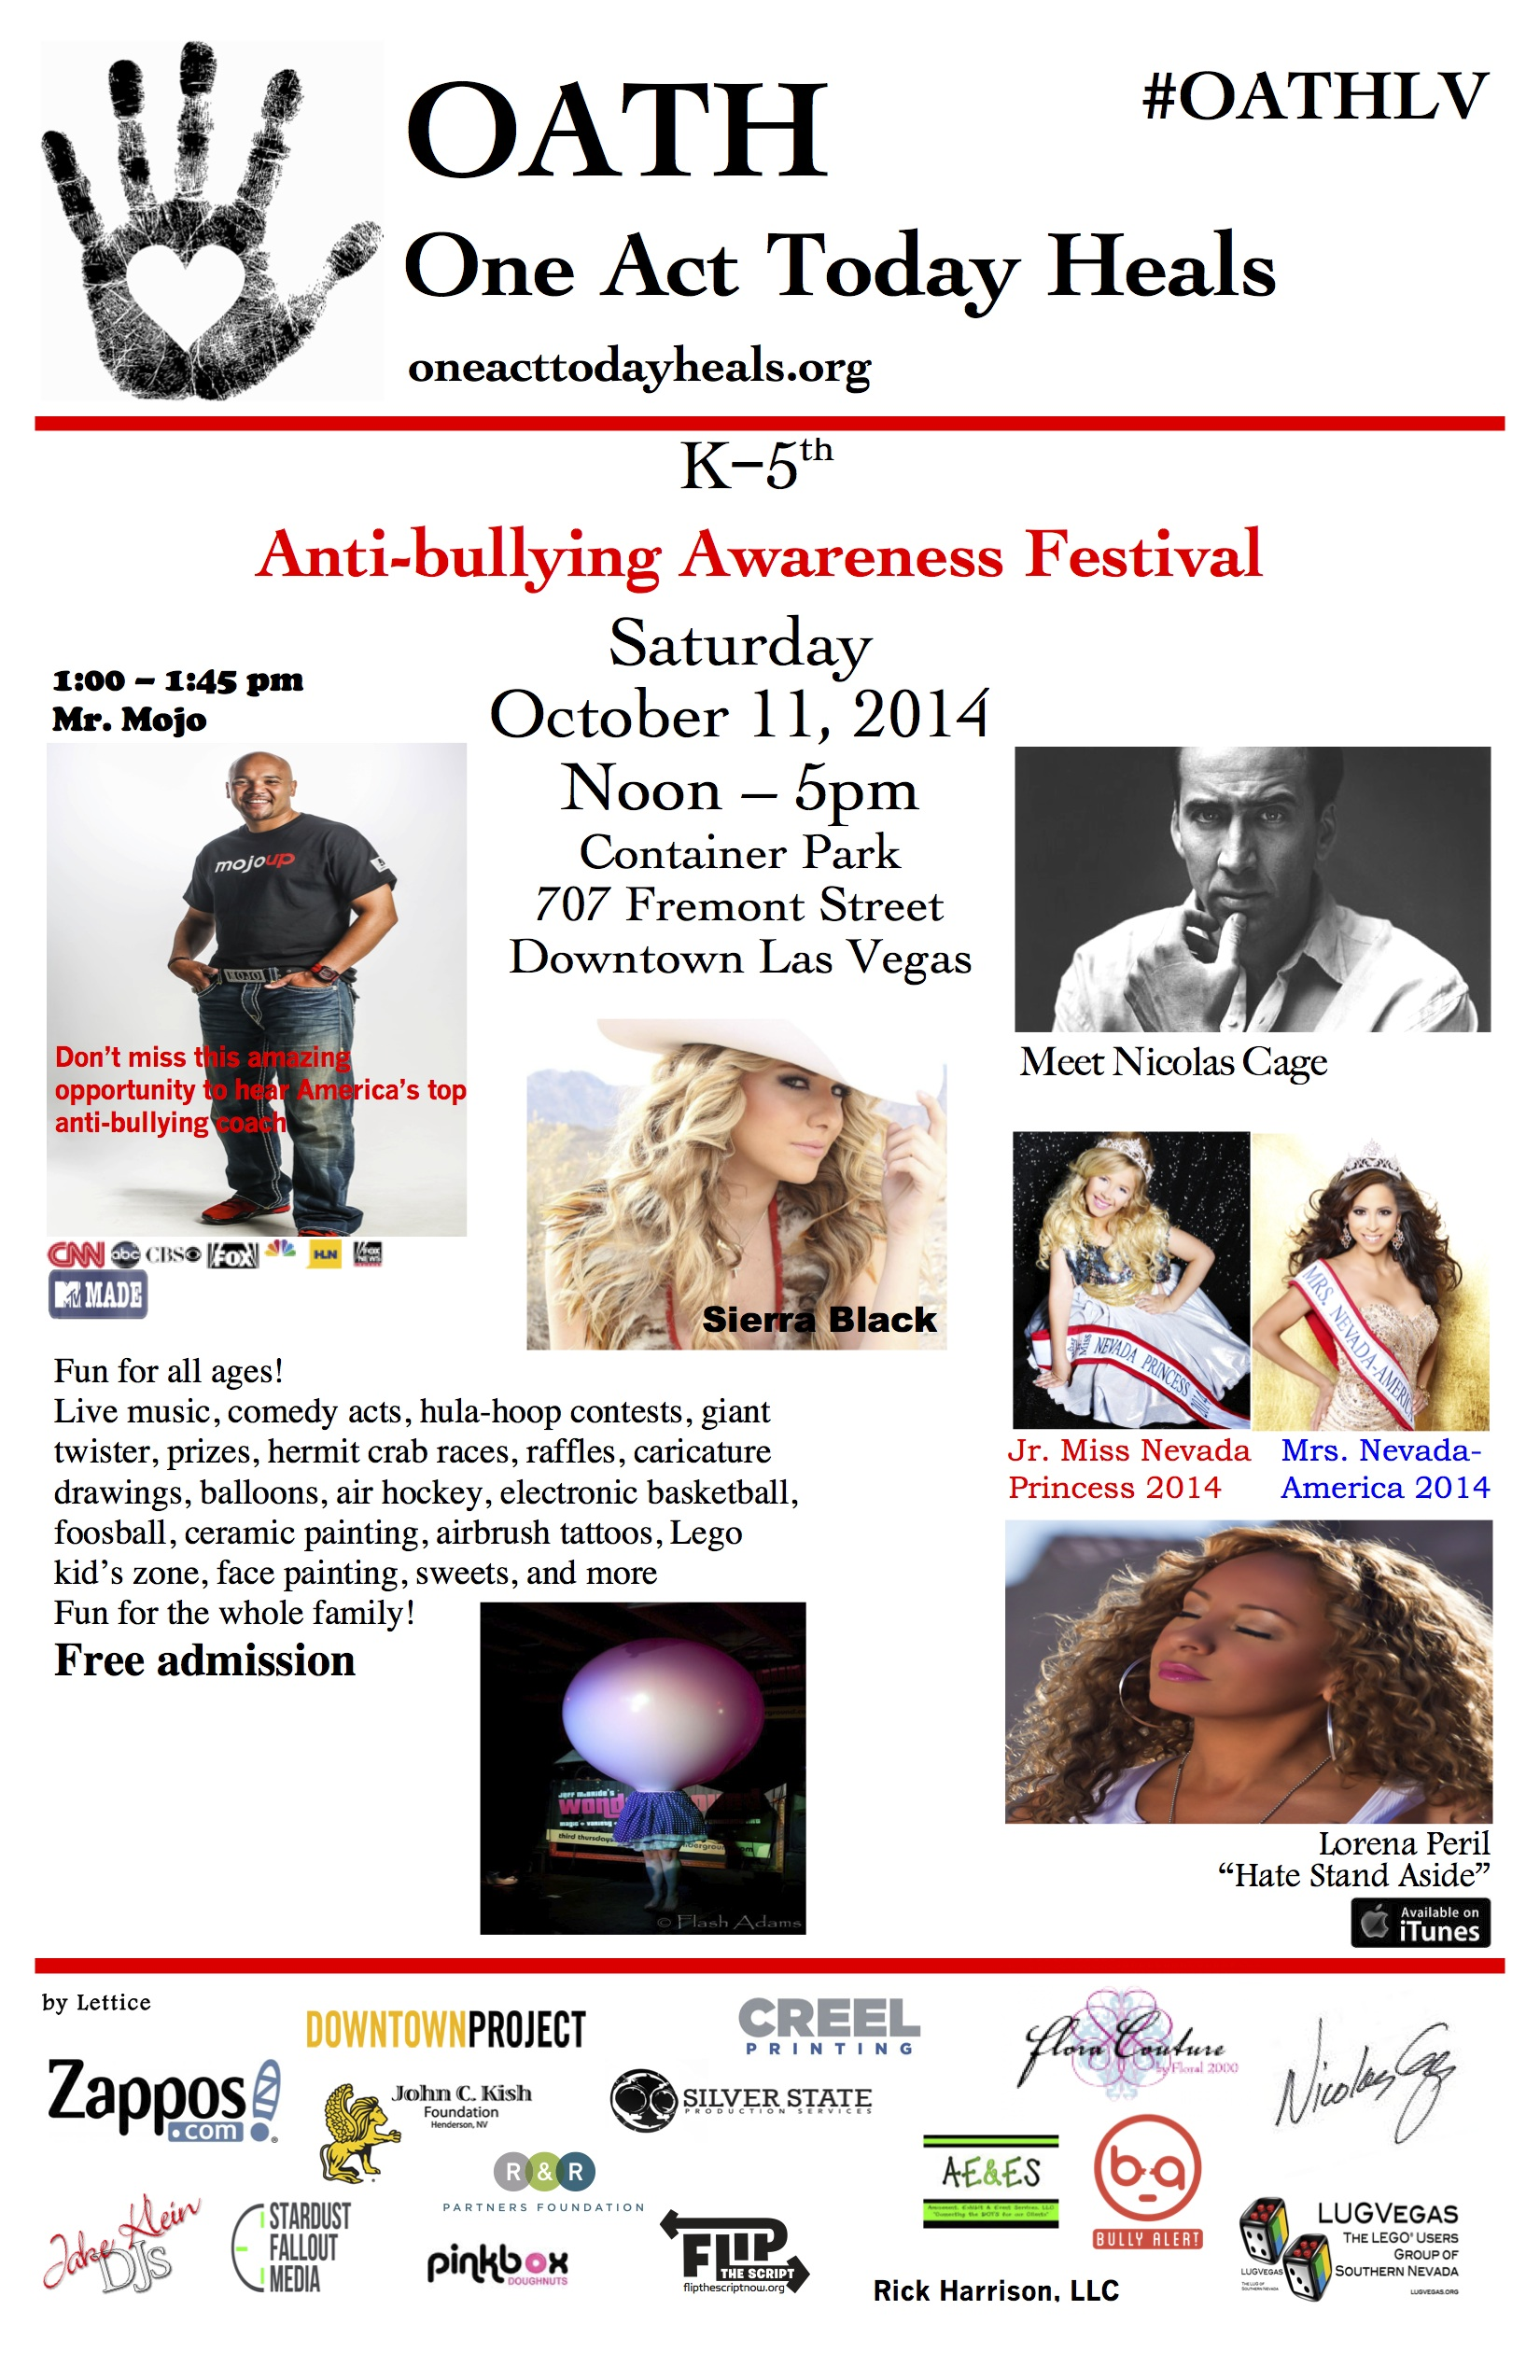 OATH Anti-bullying Awareness Festival 10/11/14